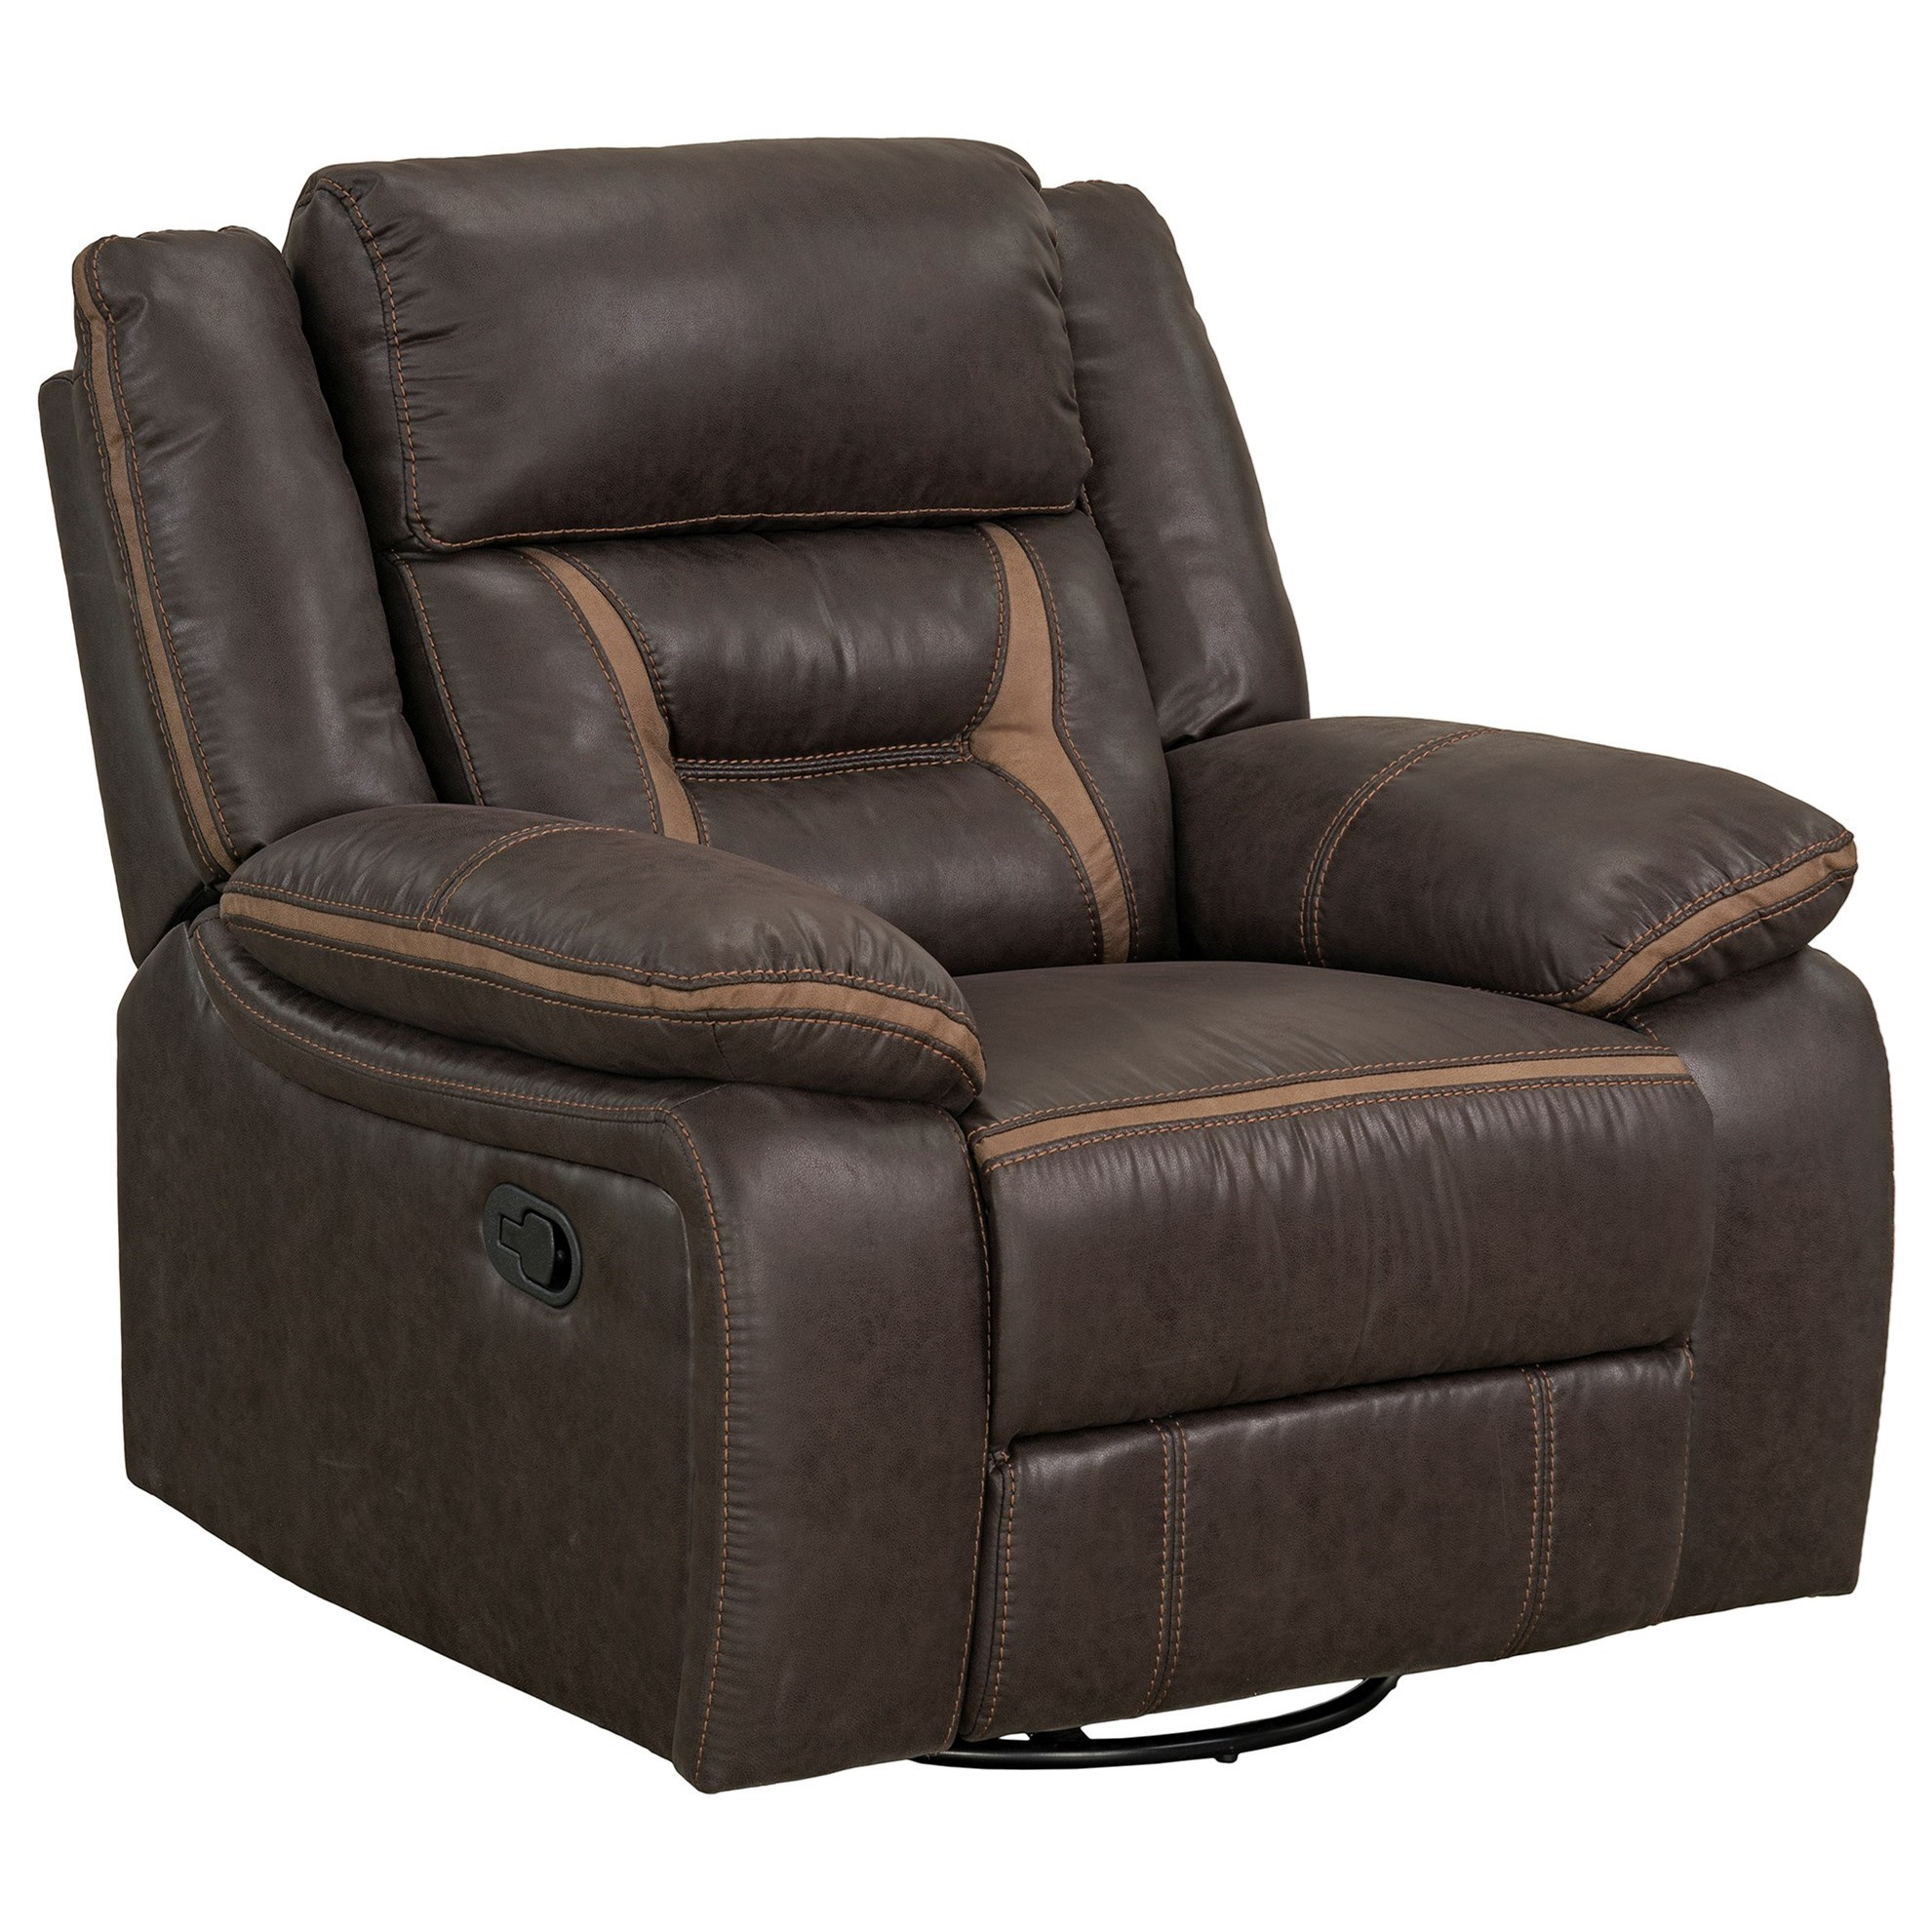 Acropolis Manual Glider Swivel Recliner by Standard Furniture at Beds N Stuff